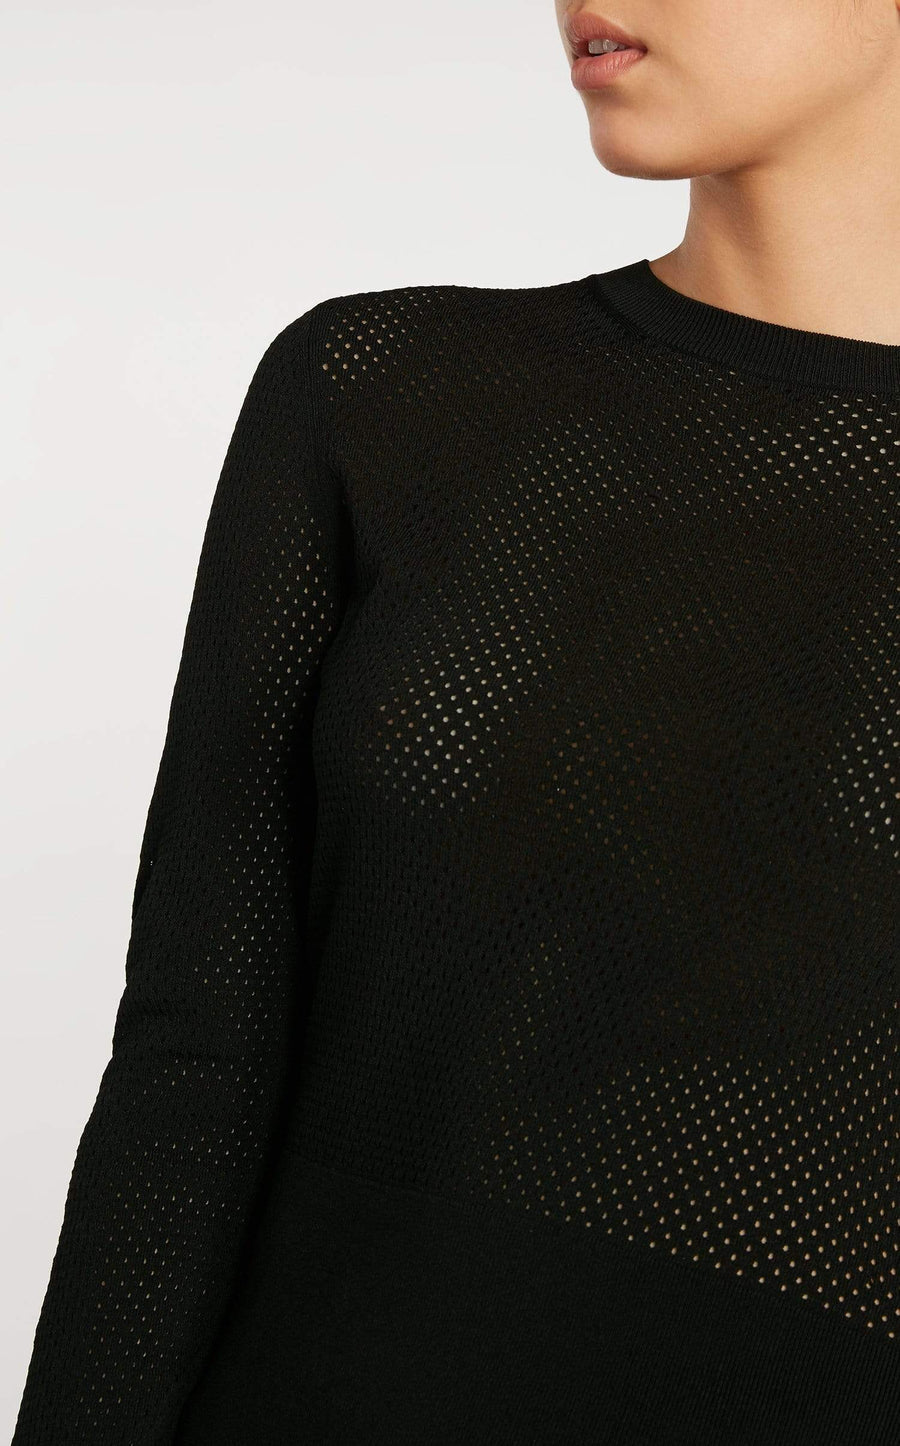 Ashcroft Top In Black from Roland Mouret